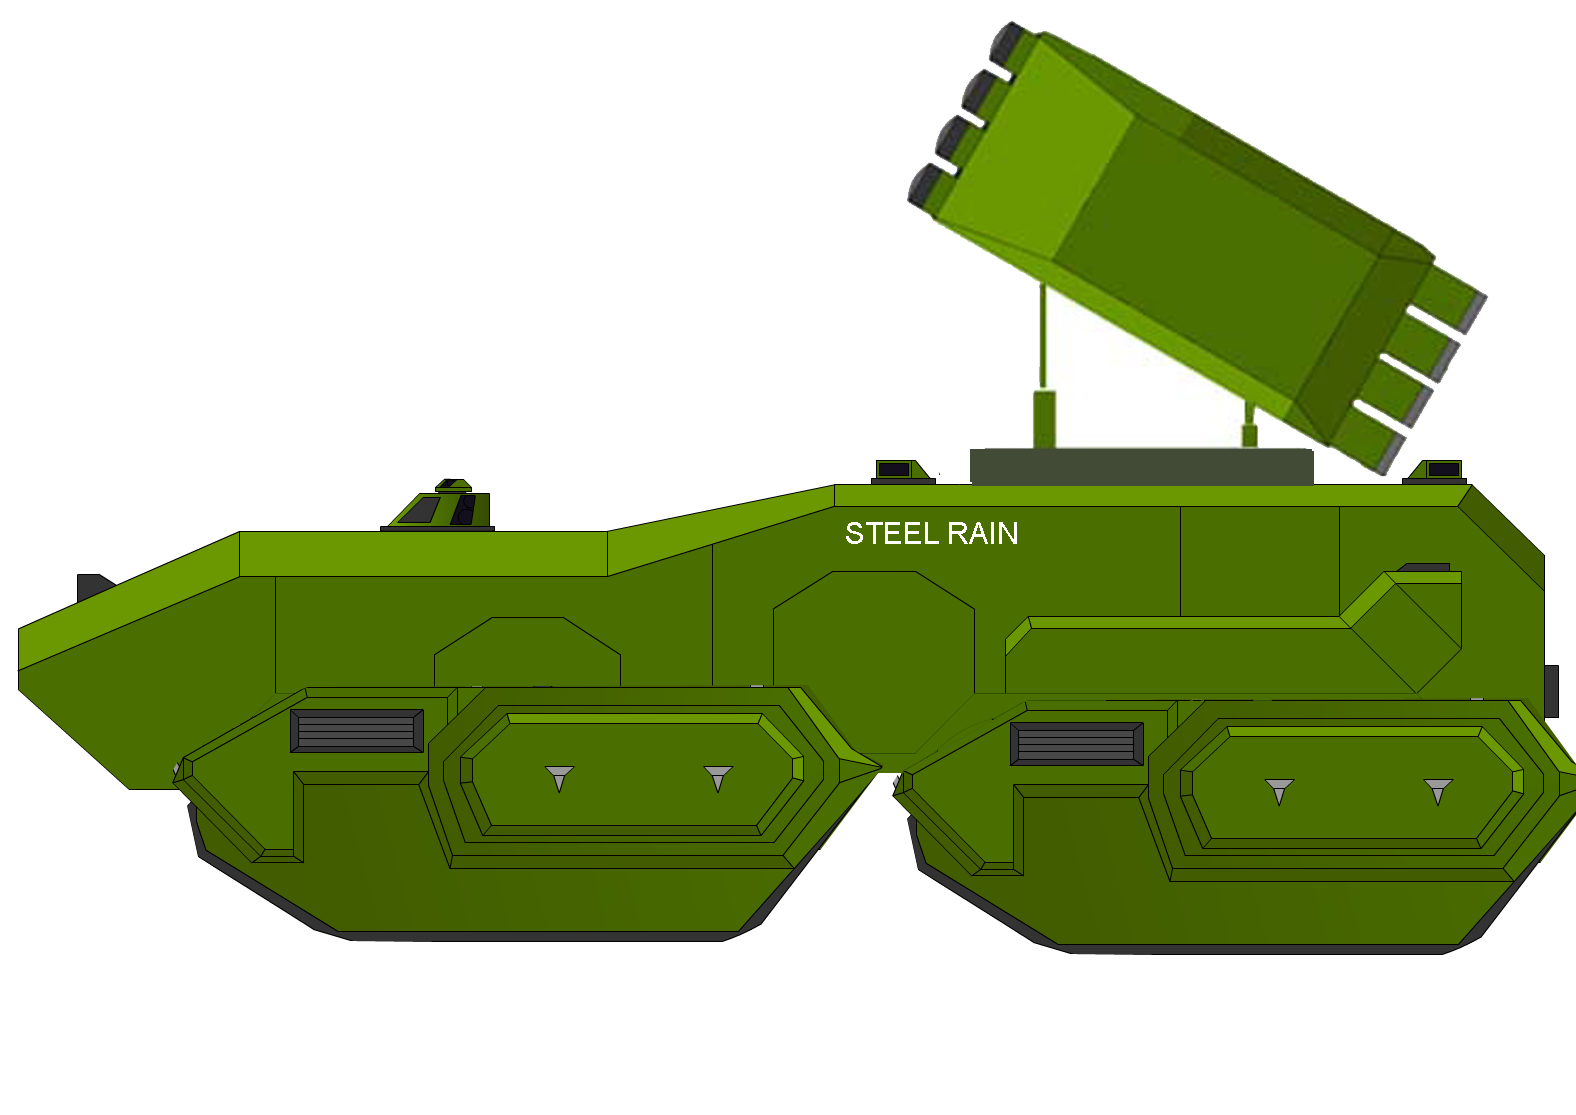 M20 Firefly Multiple Launch Rocket System